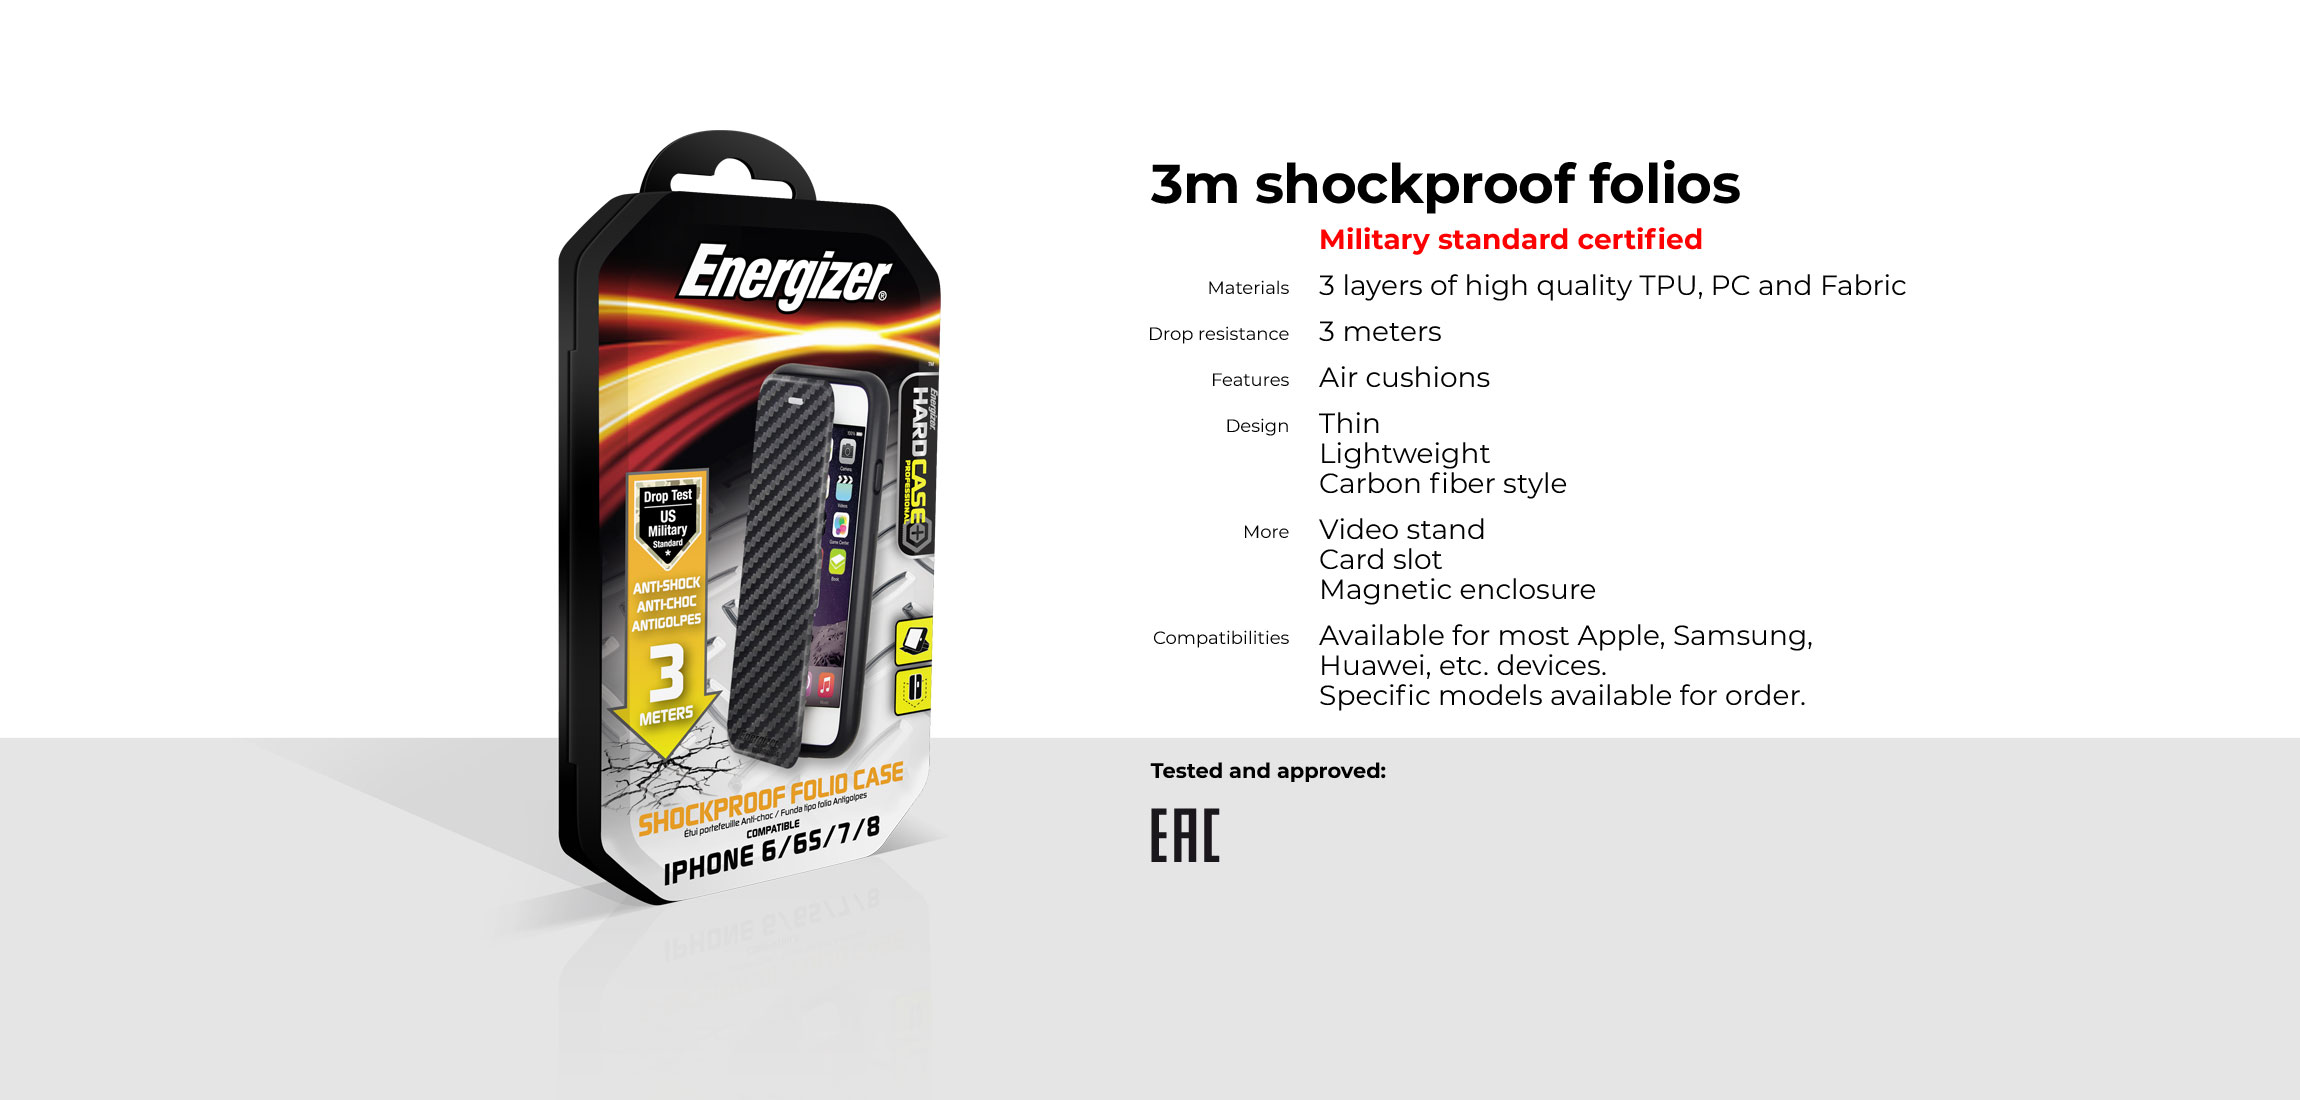 Energizer Mobile: View accessories